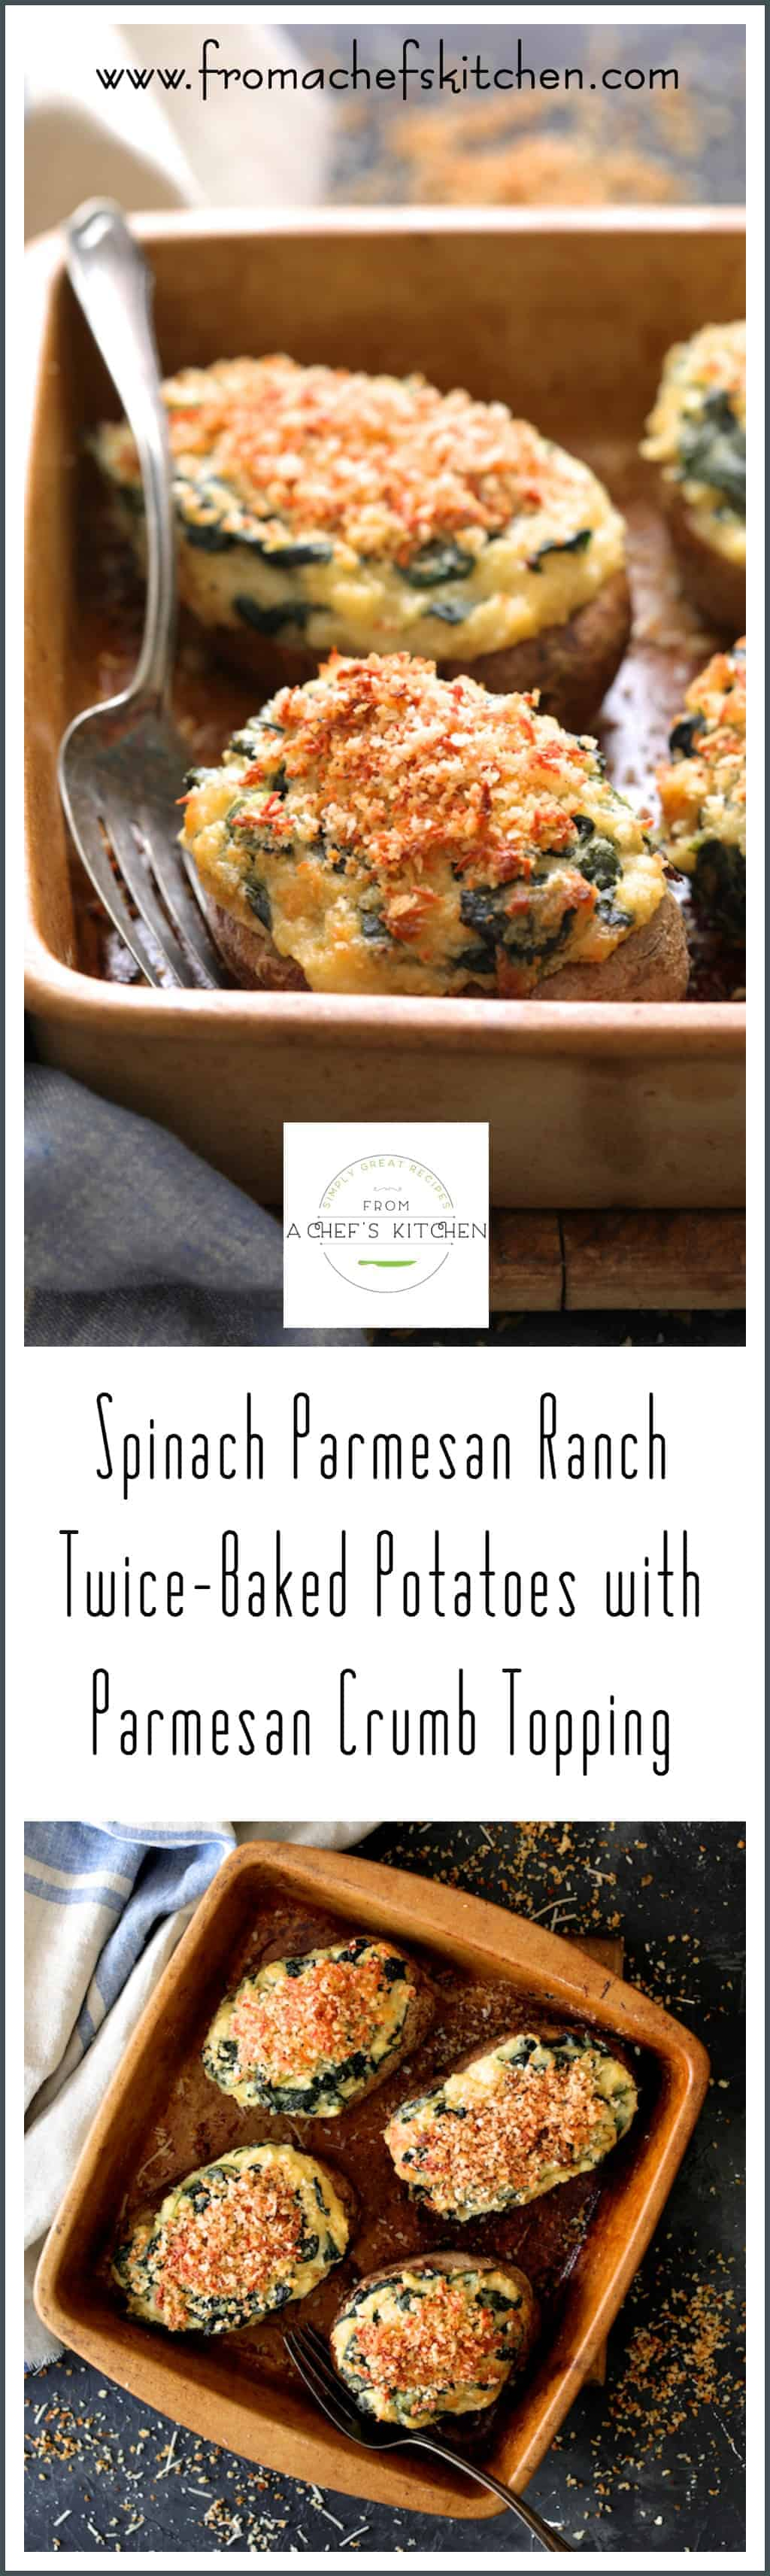 Spinach Parmesan Ranch Twice Baked Potatoes with Parmesan Crumb Topping are pillows of potato perfection!